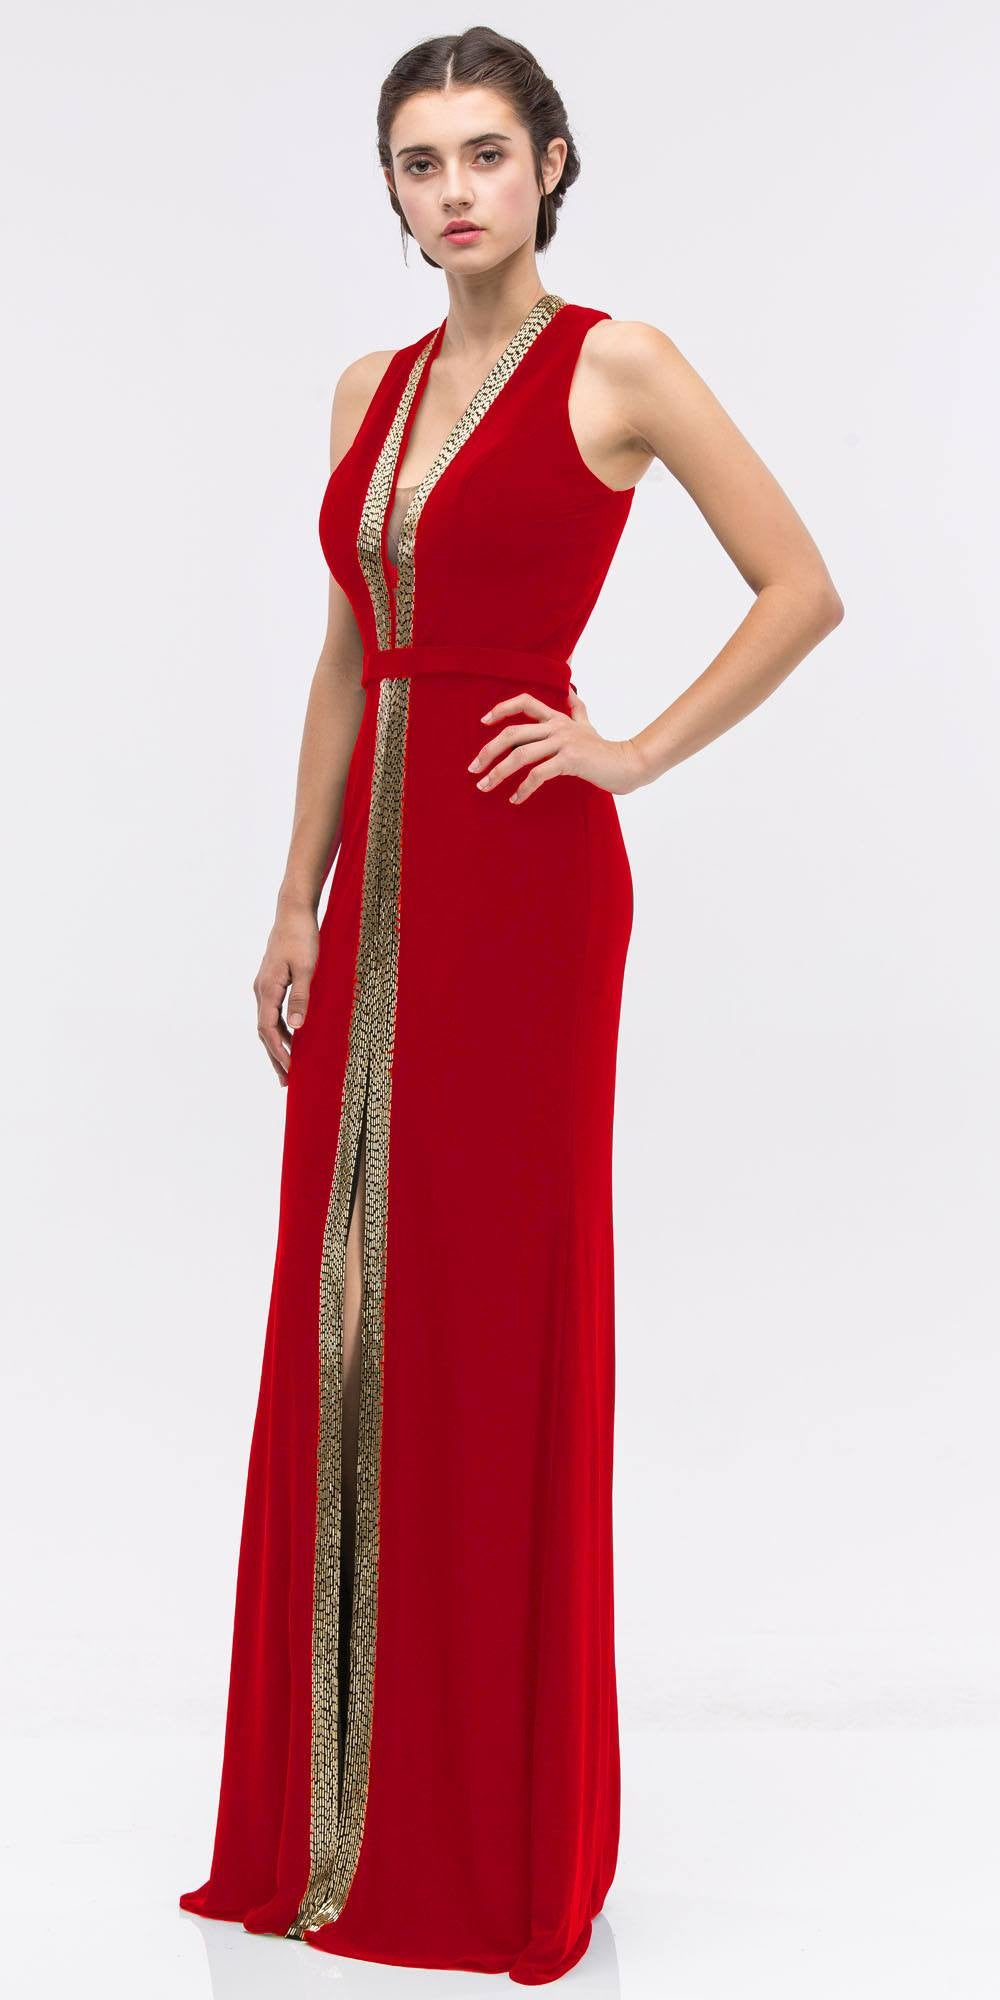 Redgold Plunging Neck Sleeveless Fit And Flare Evening Gown